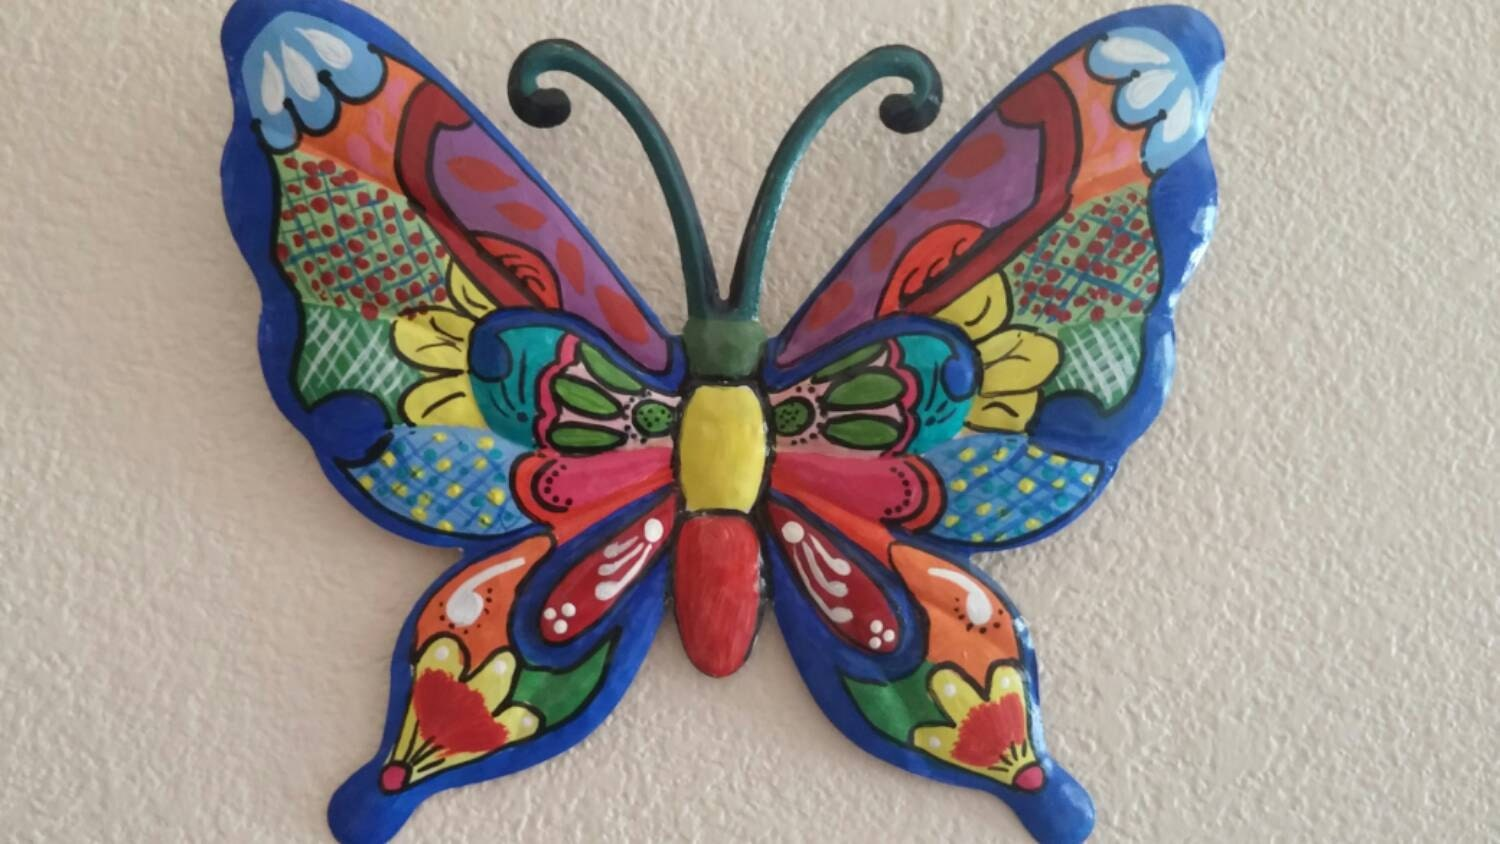 Hanging Butterfly Wall Decor : Metal wall decor hanging butterfly hand painted home